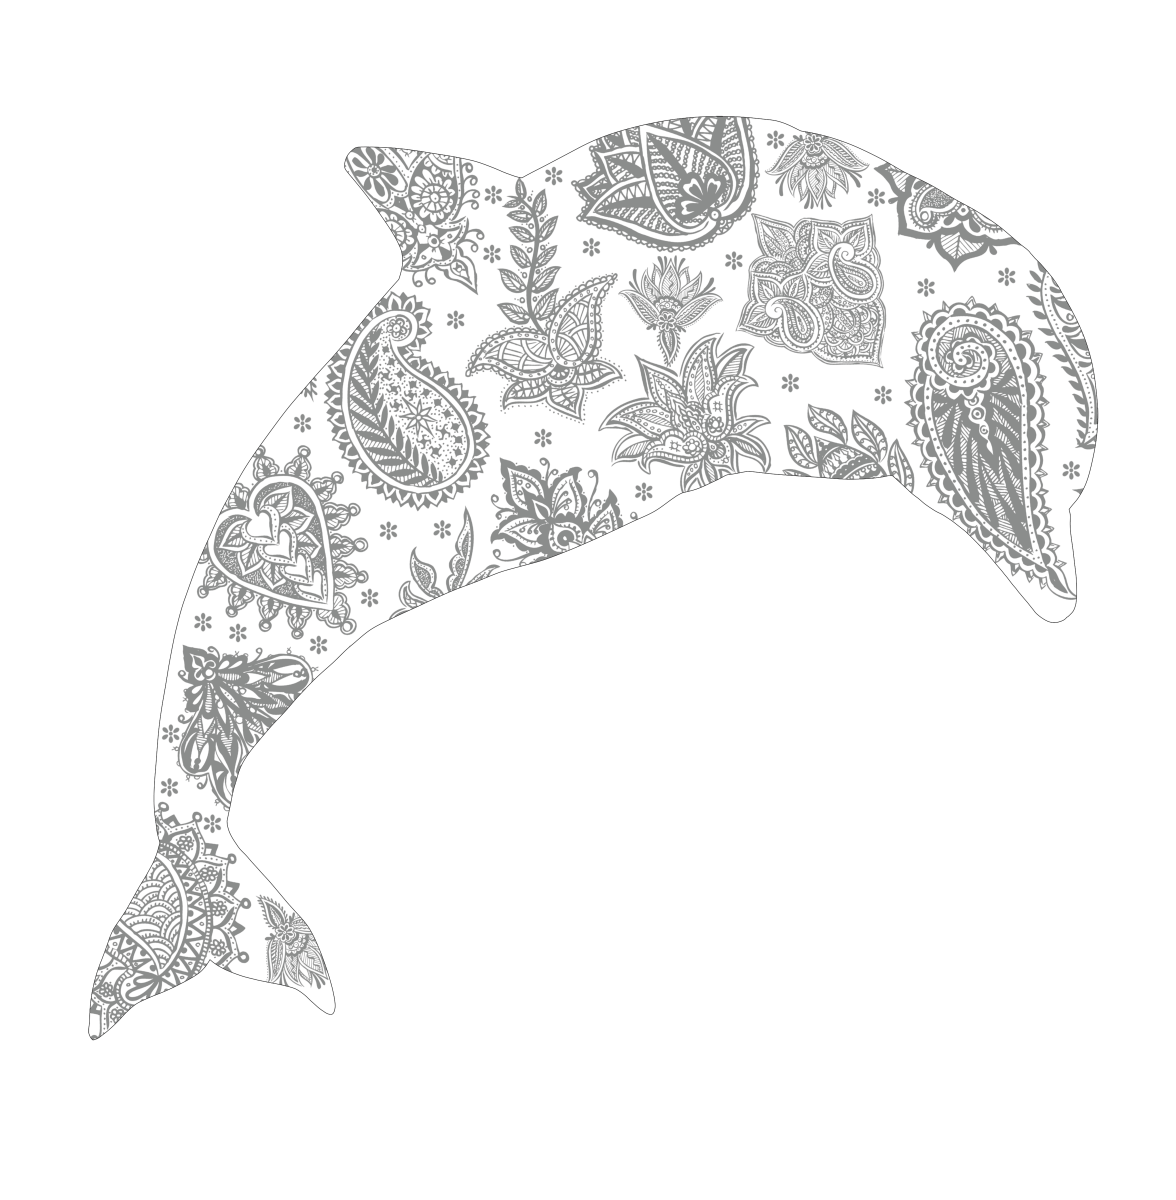 This page features a dolphin sporting a floral mandala-inspired design.